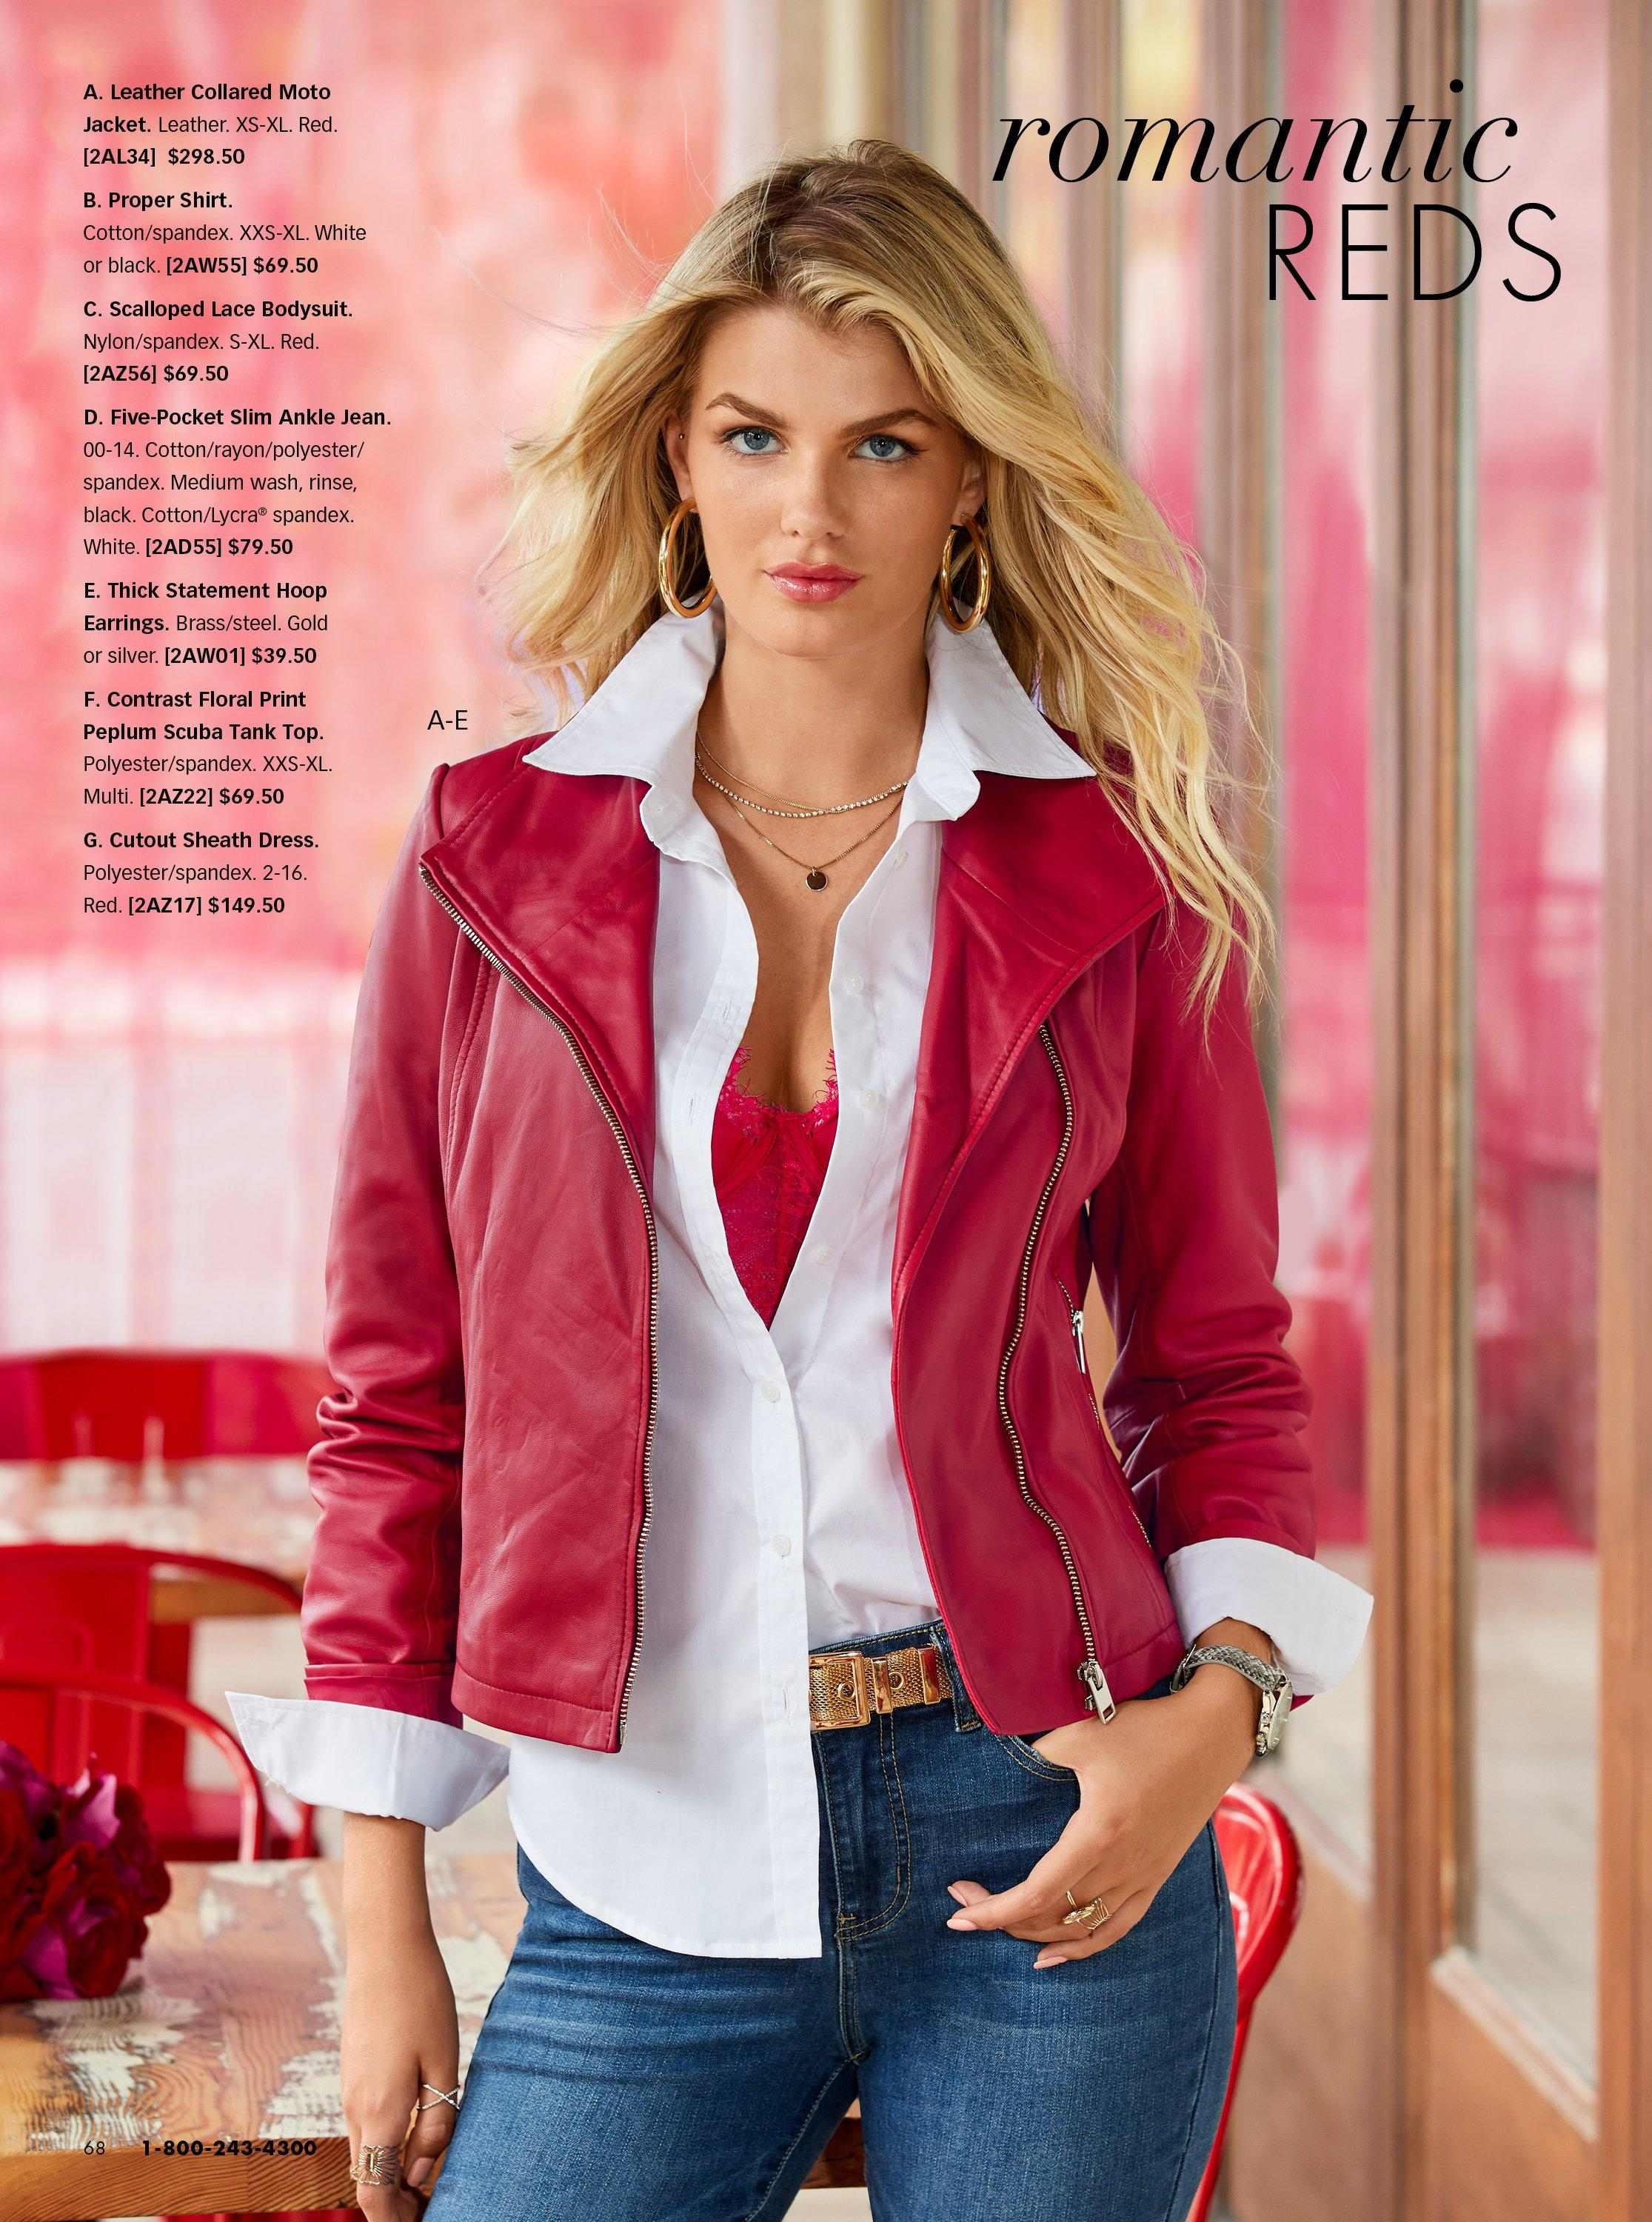 model wearing a red leather jacket, white button-up top, red lace bodysuit, and jeans.